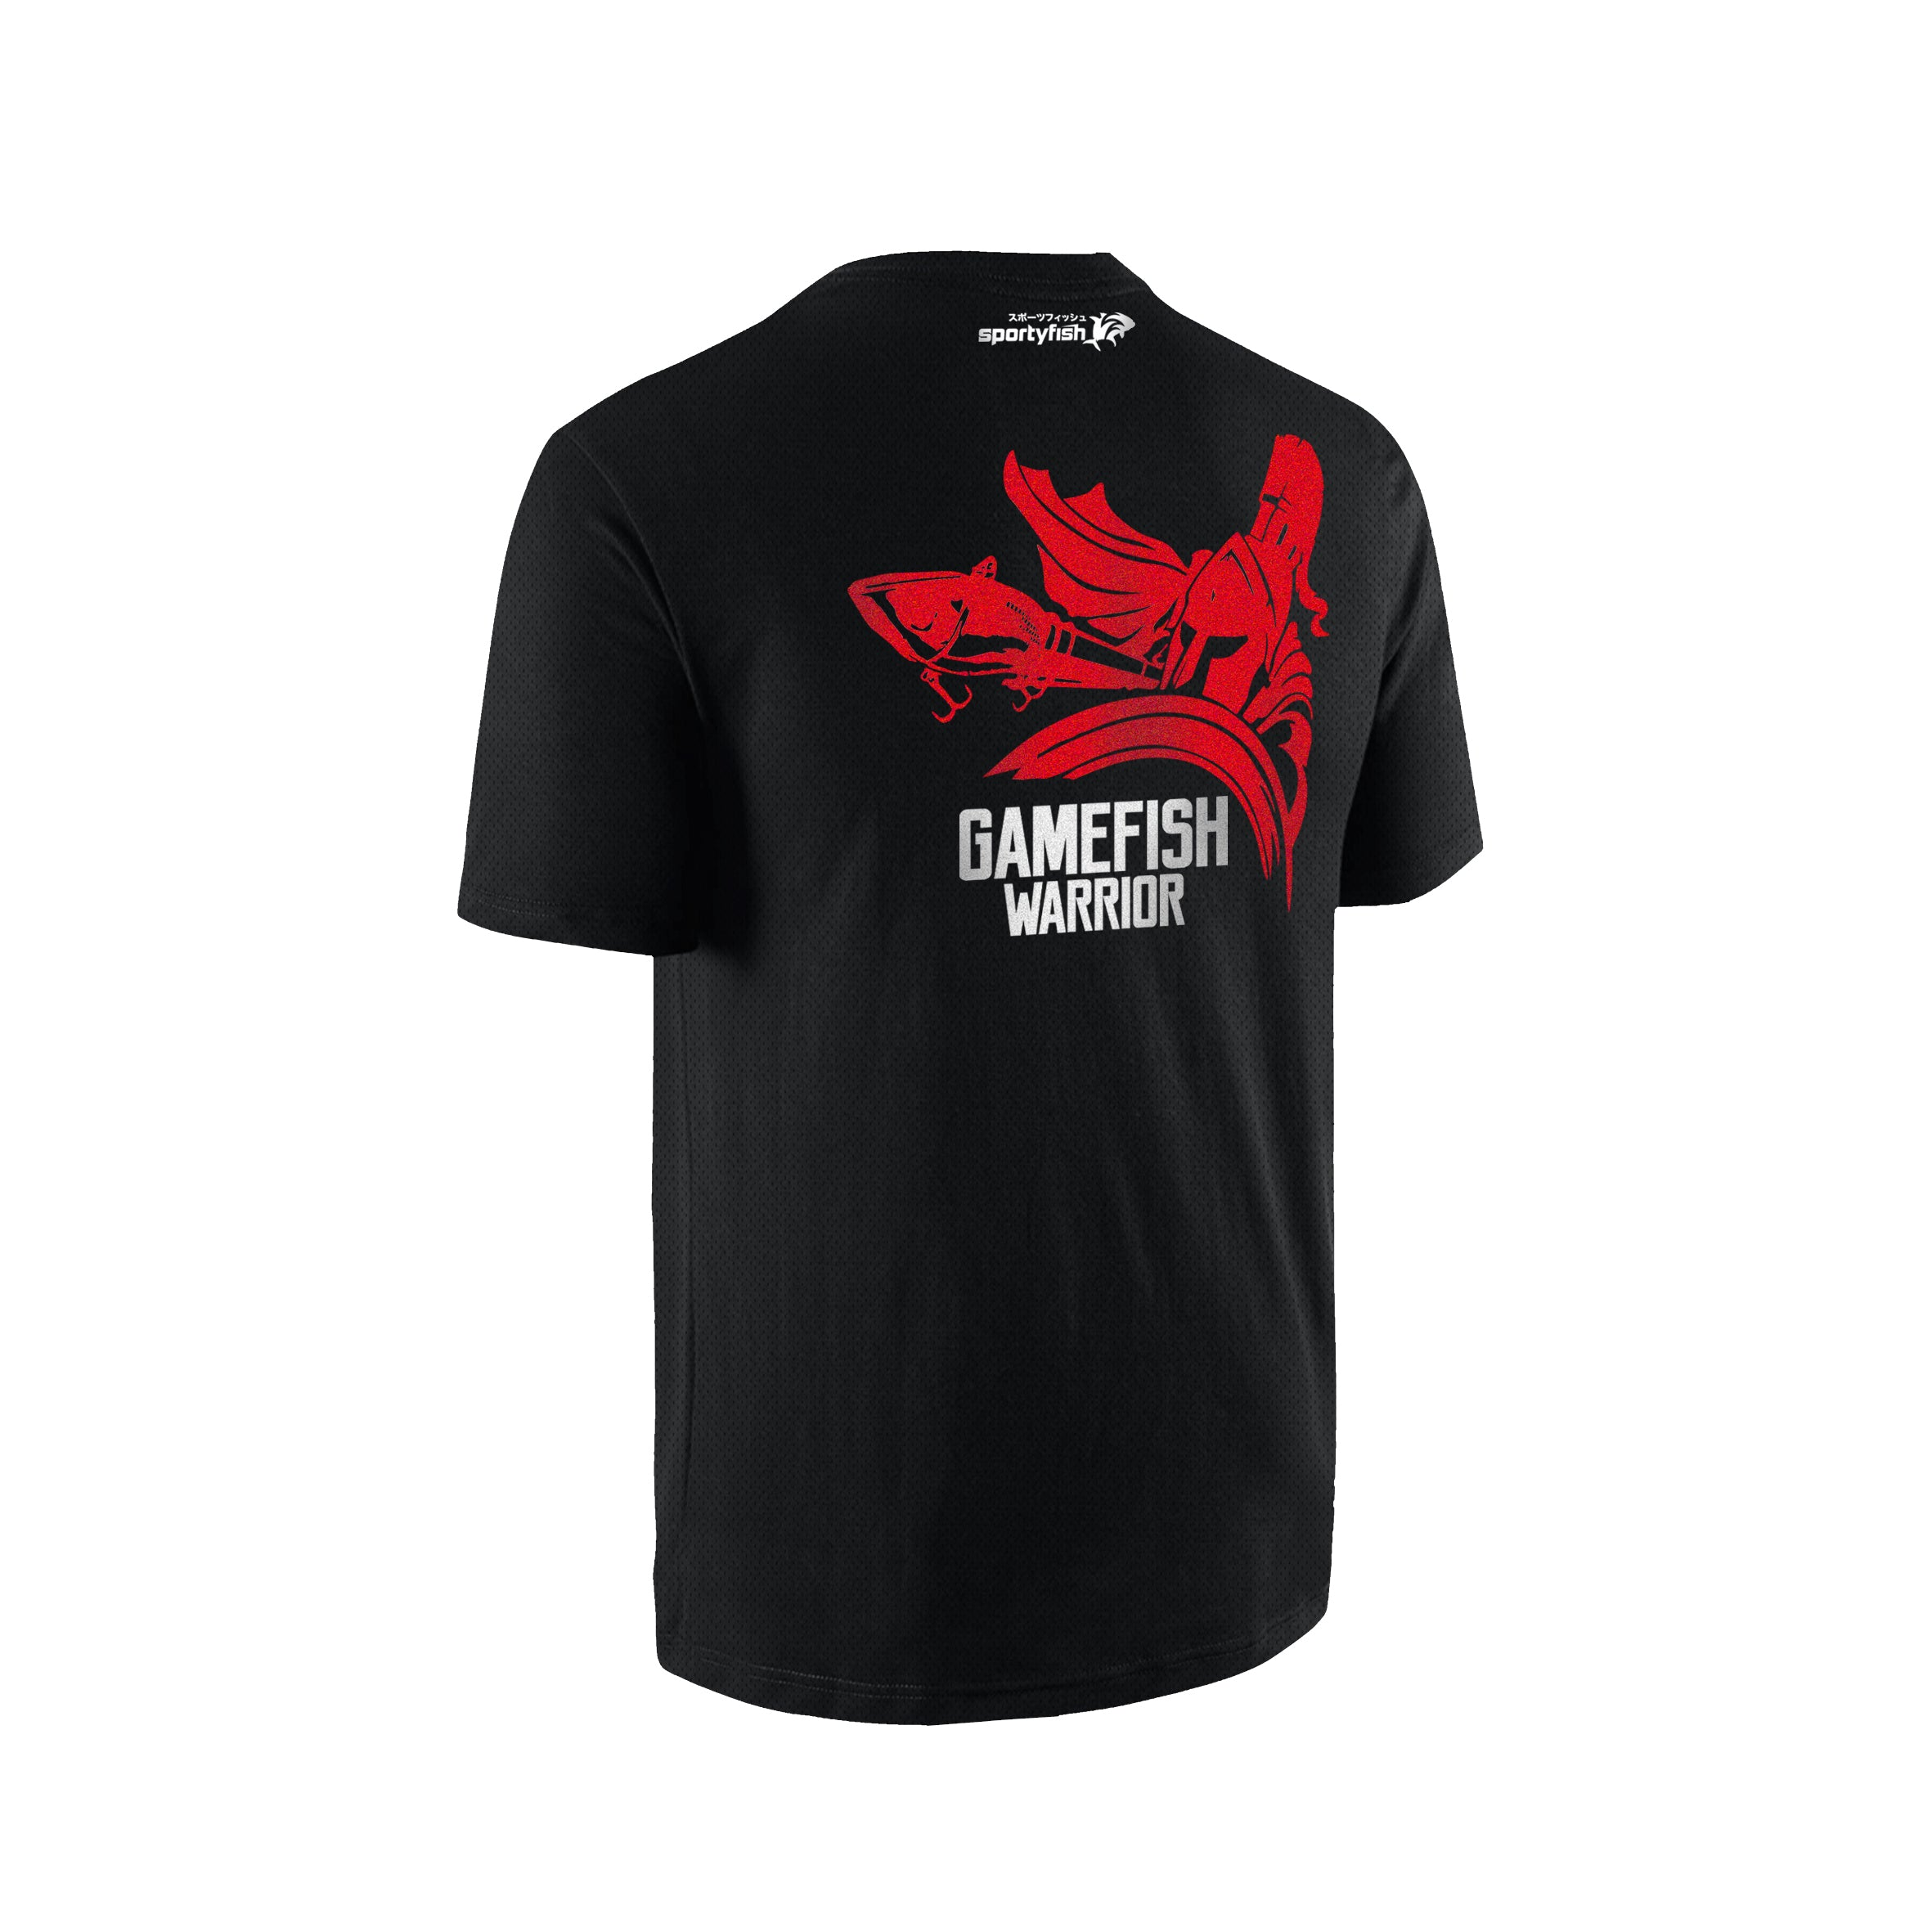 SportyFish GameFish Warrior Series T-shirt(back view): The Lure